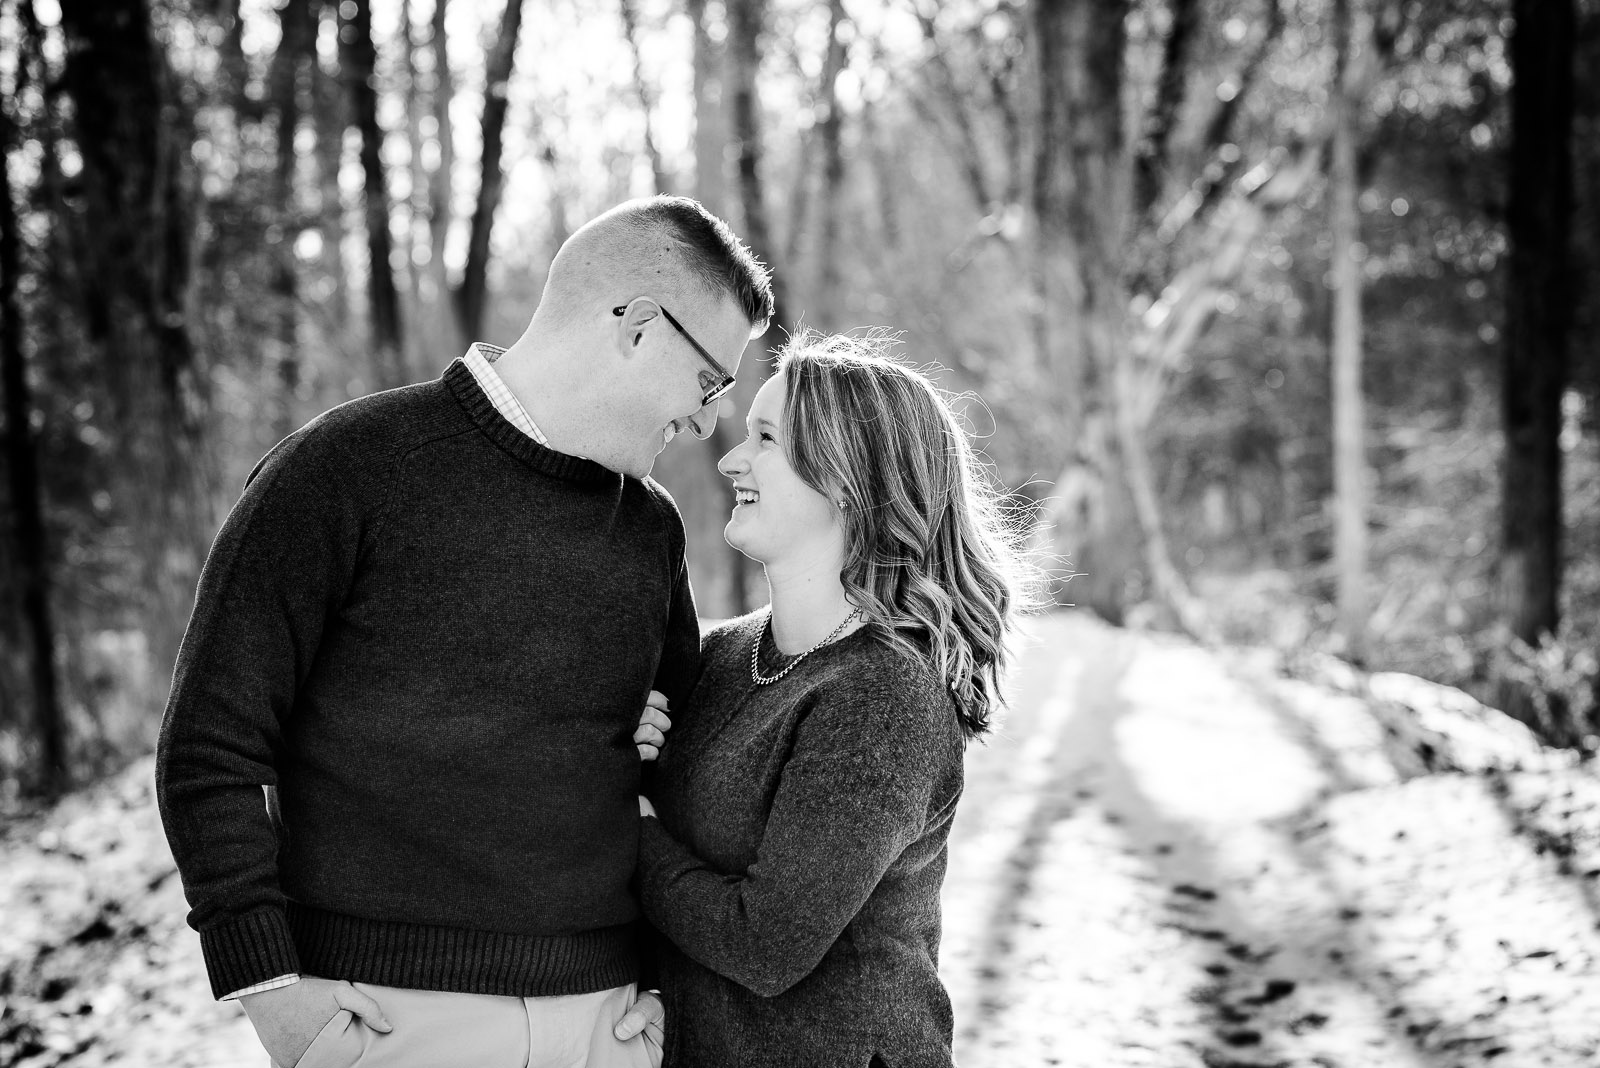 Eric_and_Christy_Photography_Engagement_Erica_Mike-7